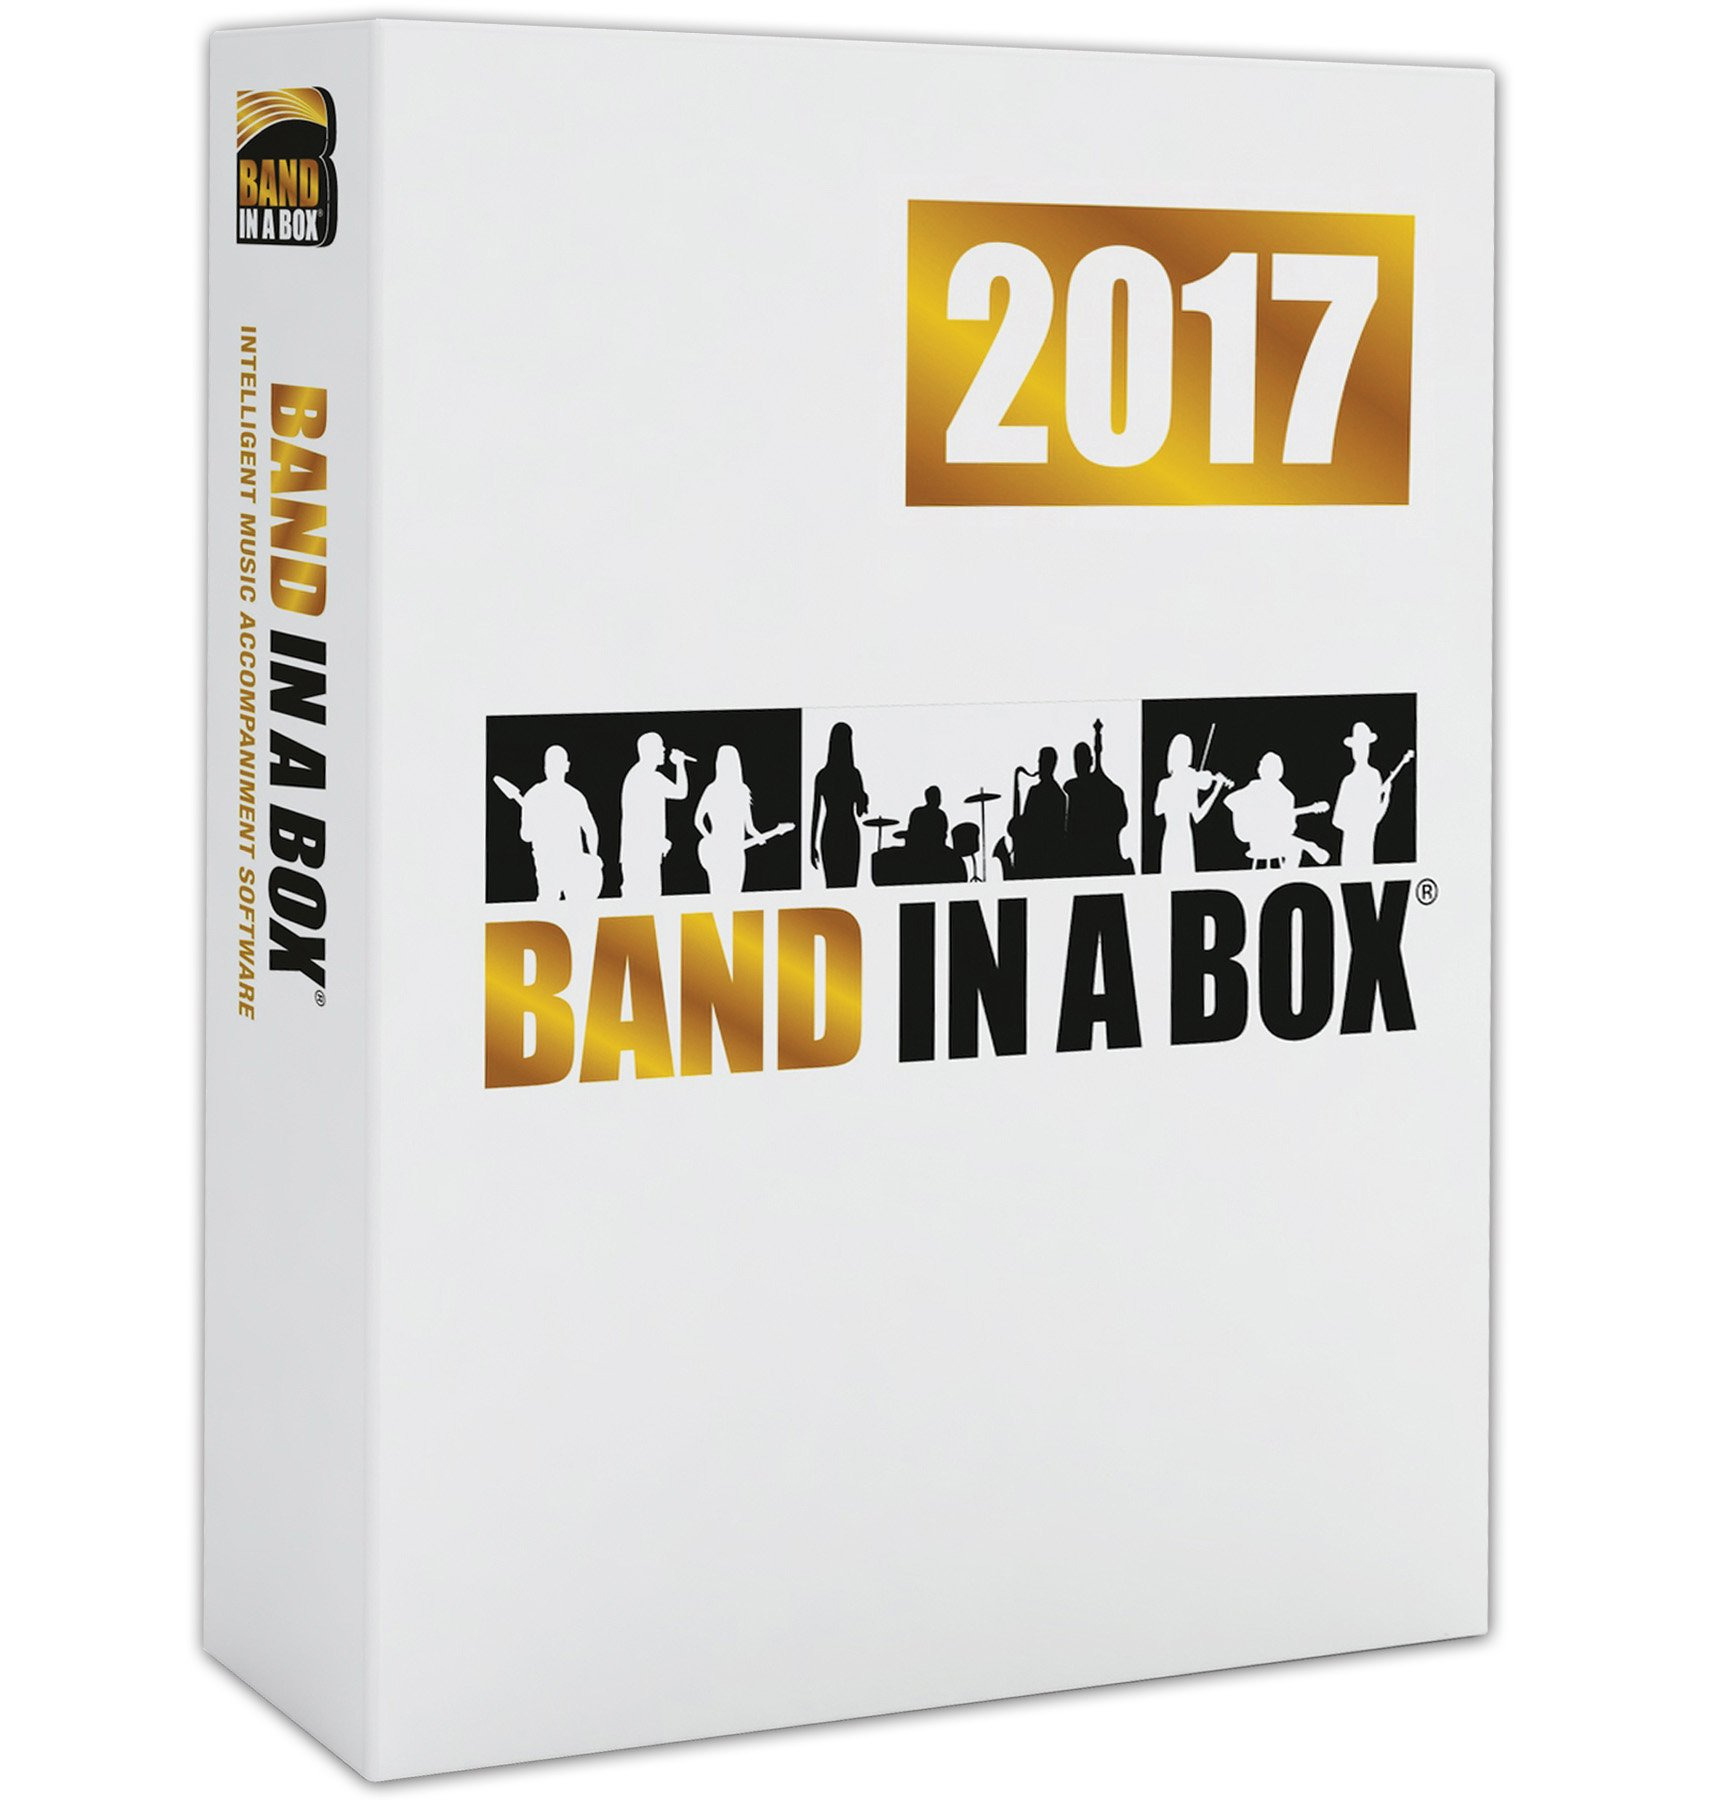 Band-in-a-Box 2017 Pro [Old Version, Mac DVD-ROM] by PG Music Inc.